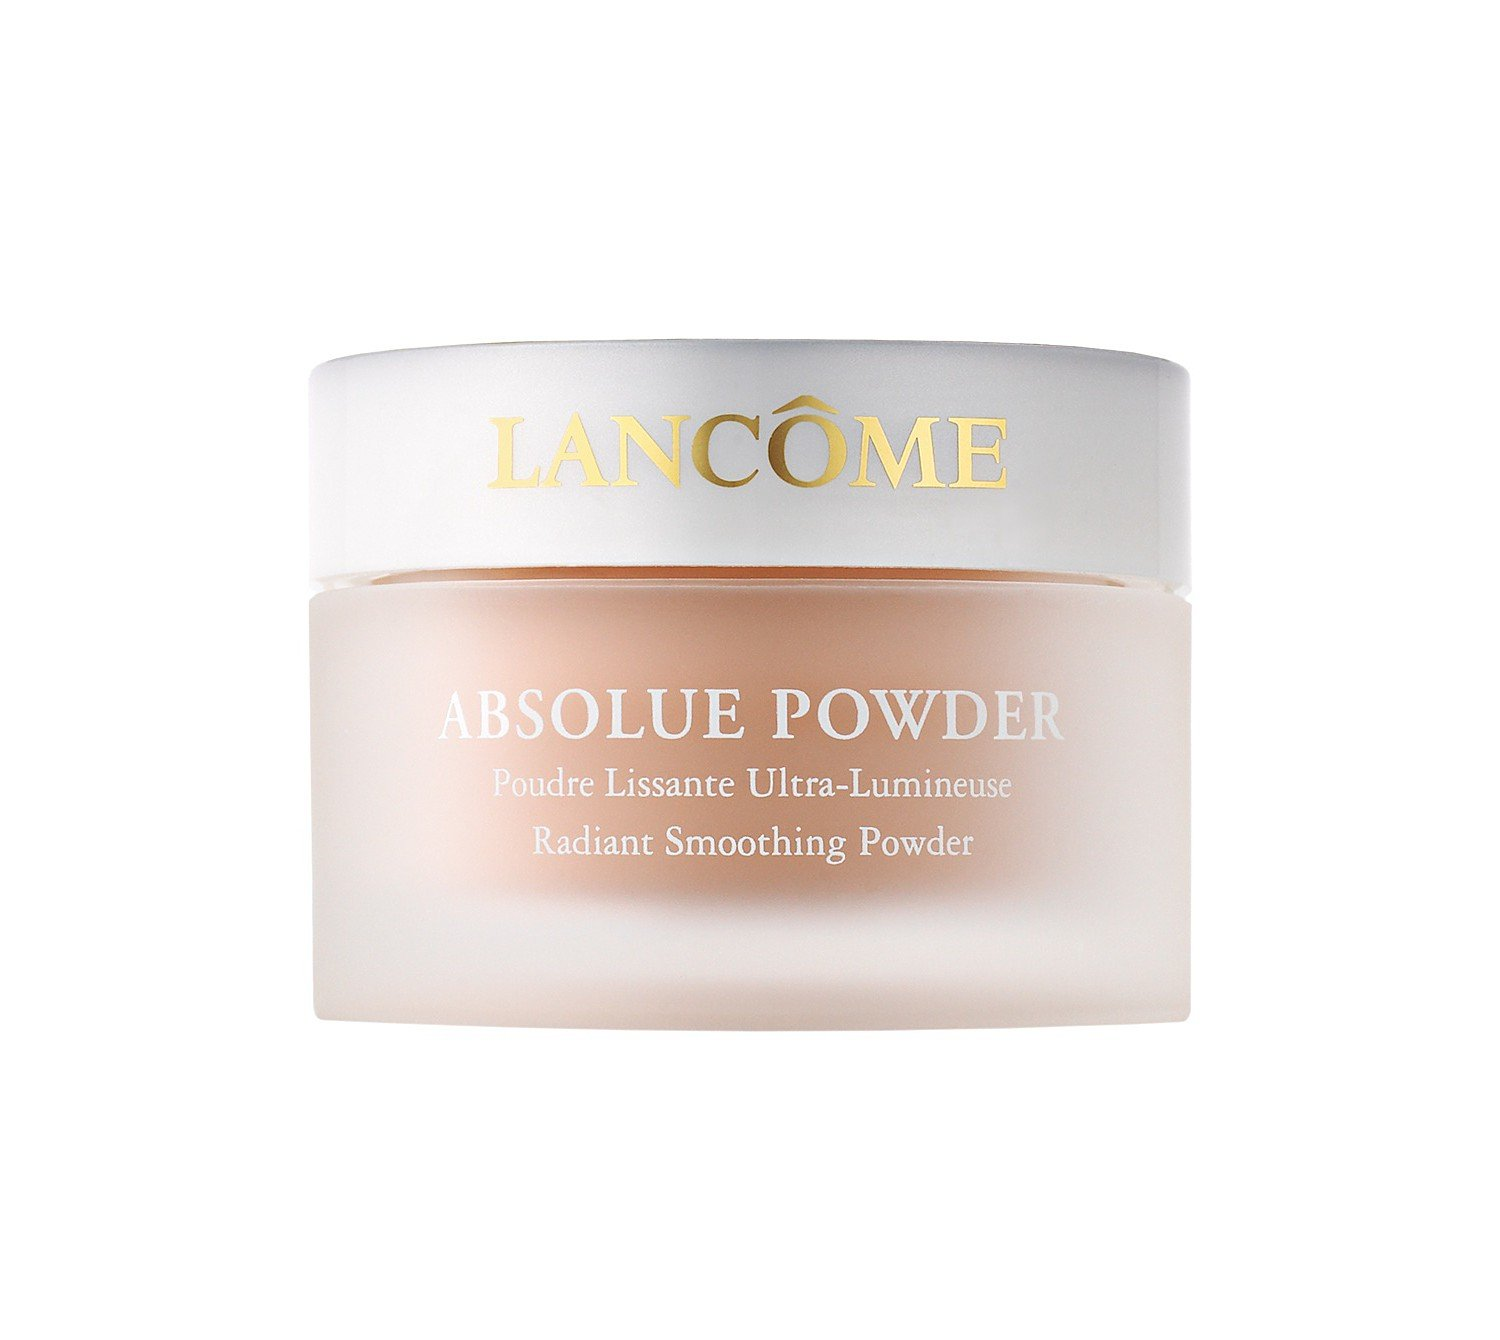 Lancome/absolue Powder Absolute Ecru Light .352 Oz .352 Oz Loose Powder .352 OZ